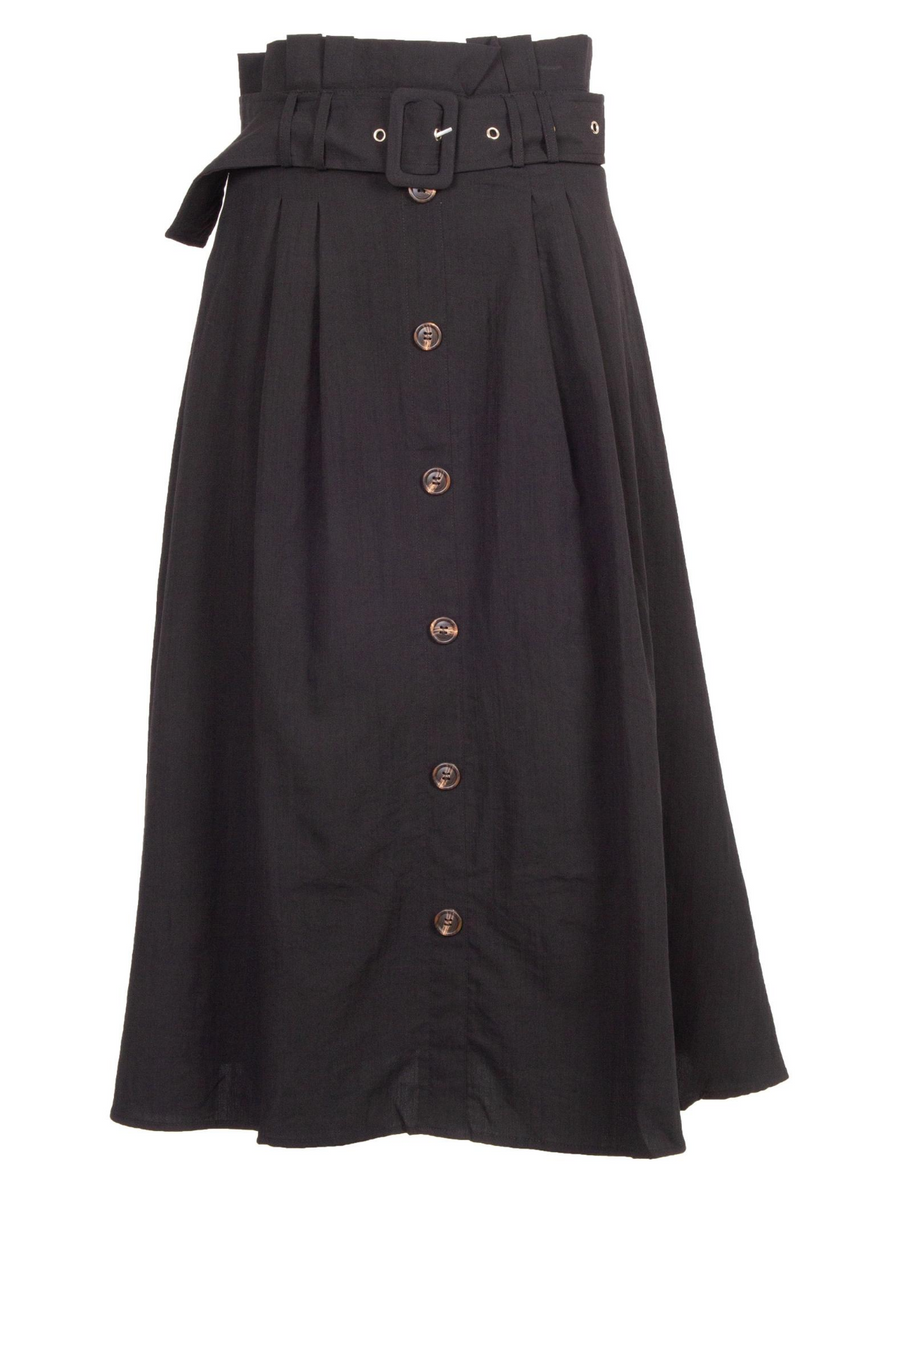 AOTC Bida Skirt Black